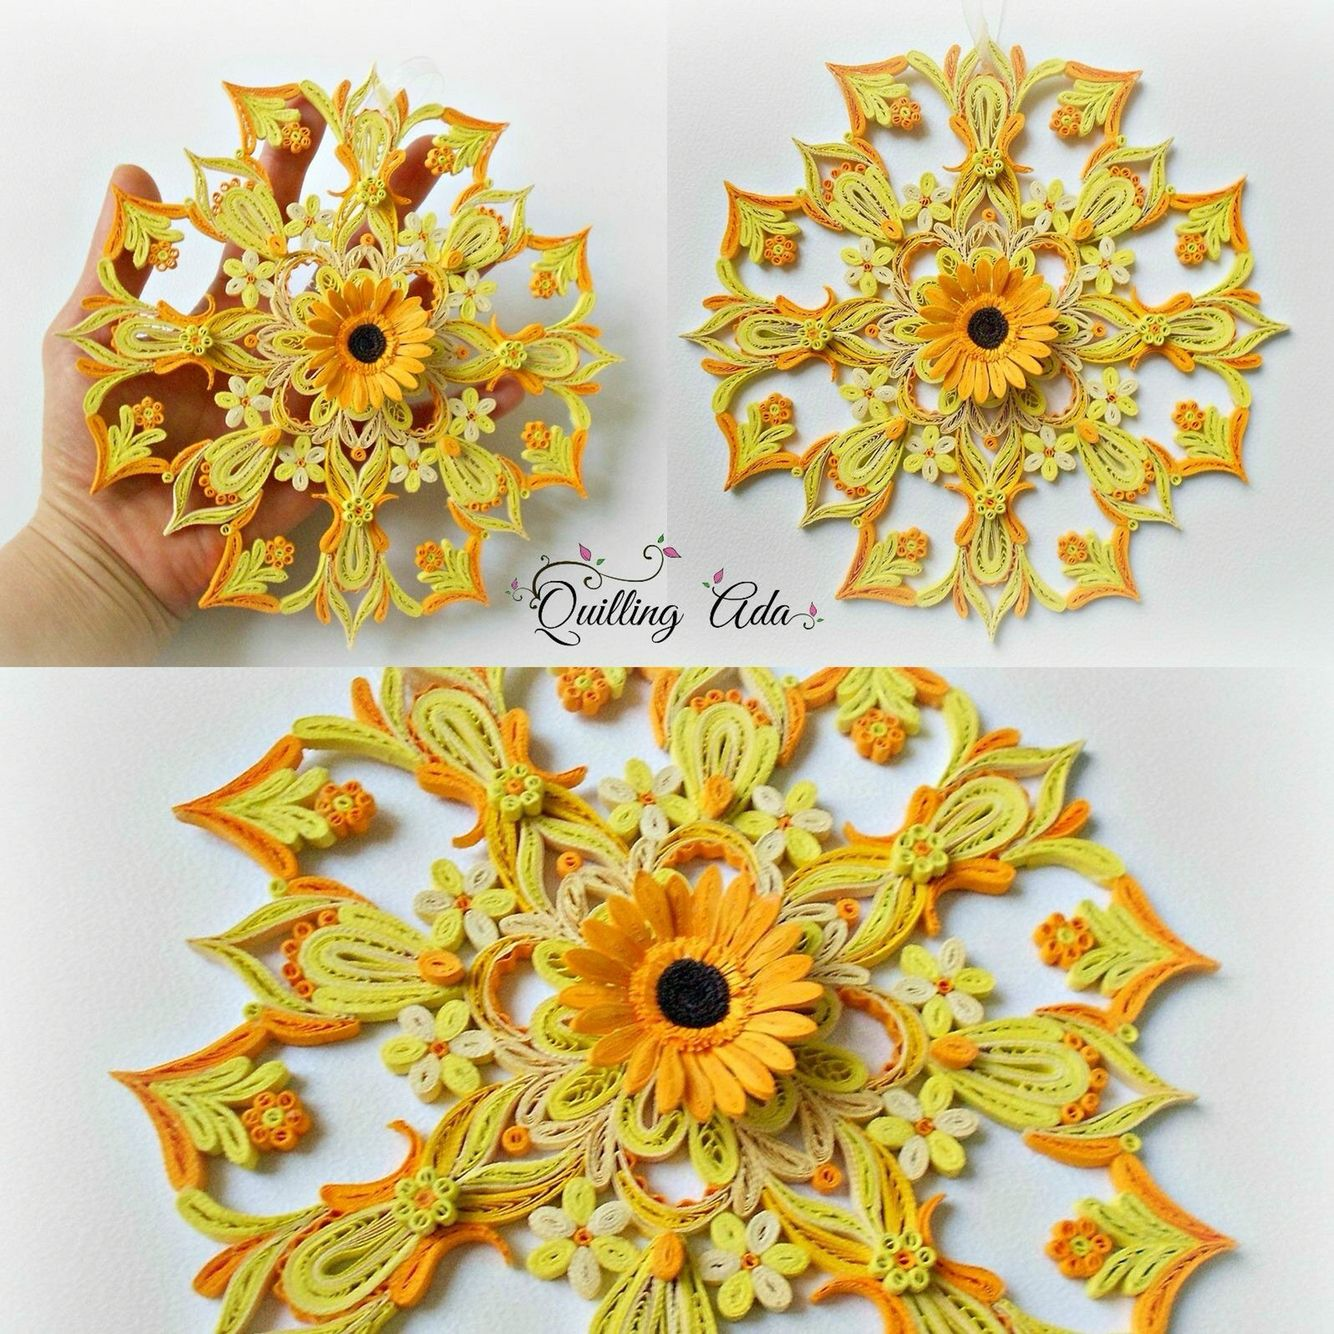 Pin by Sylvia H on Gorgeous Quill | Pinterest | Quilling, Quill and ...